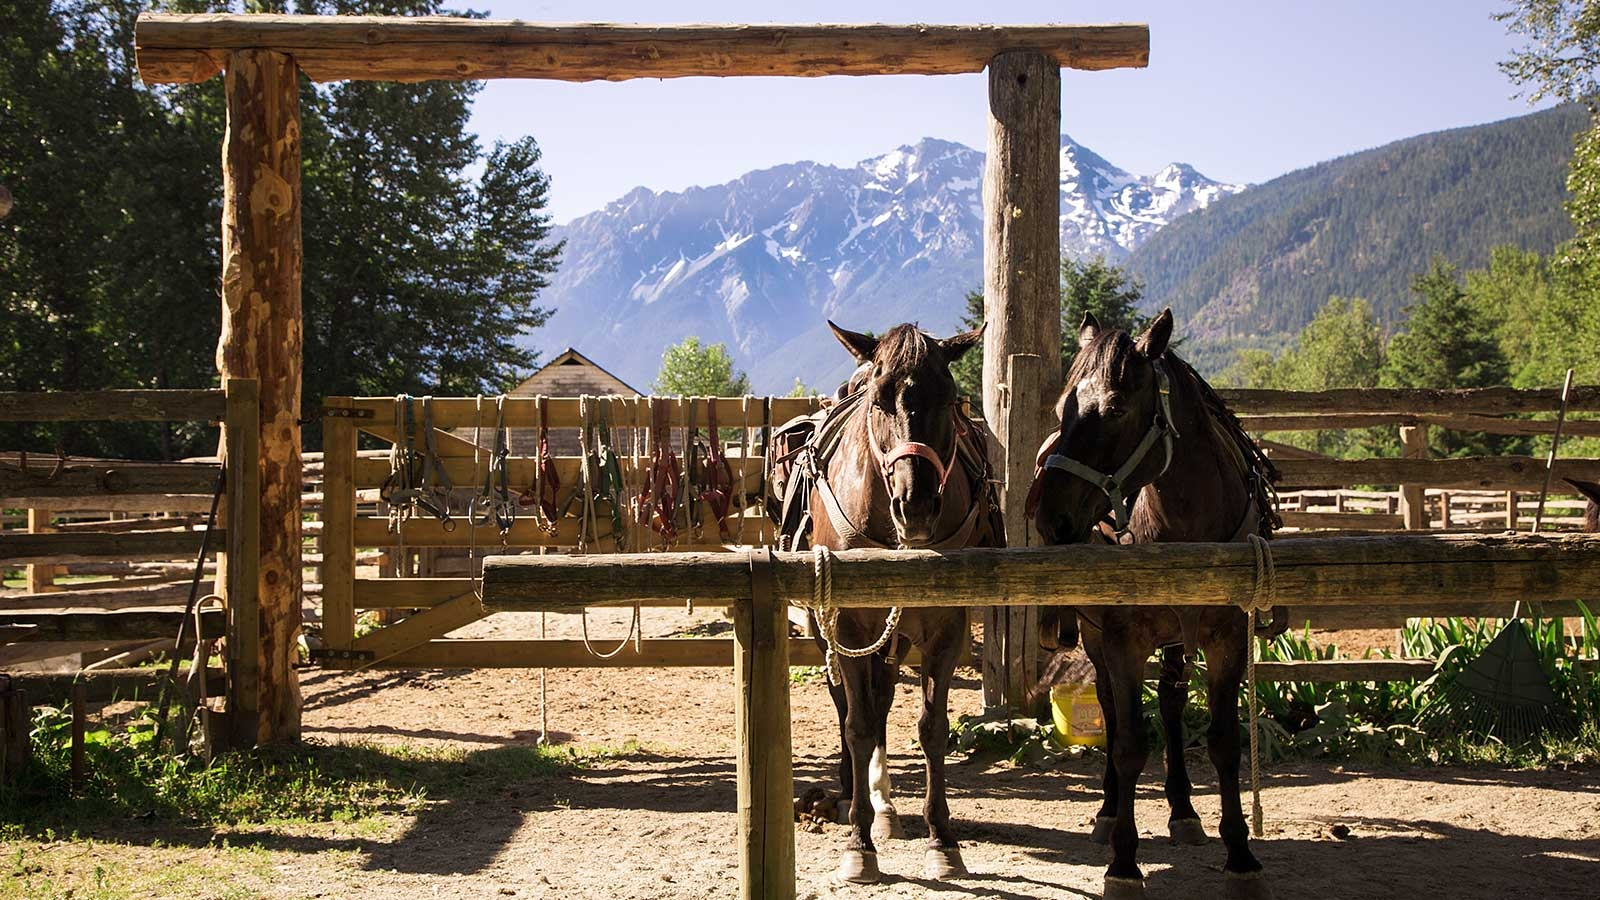 two horses on a ranch near Pemberton, BC standing in front of a sunny mountain scenery in British Columbia